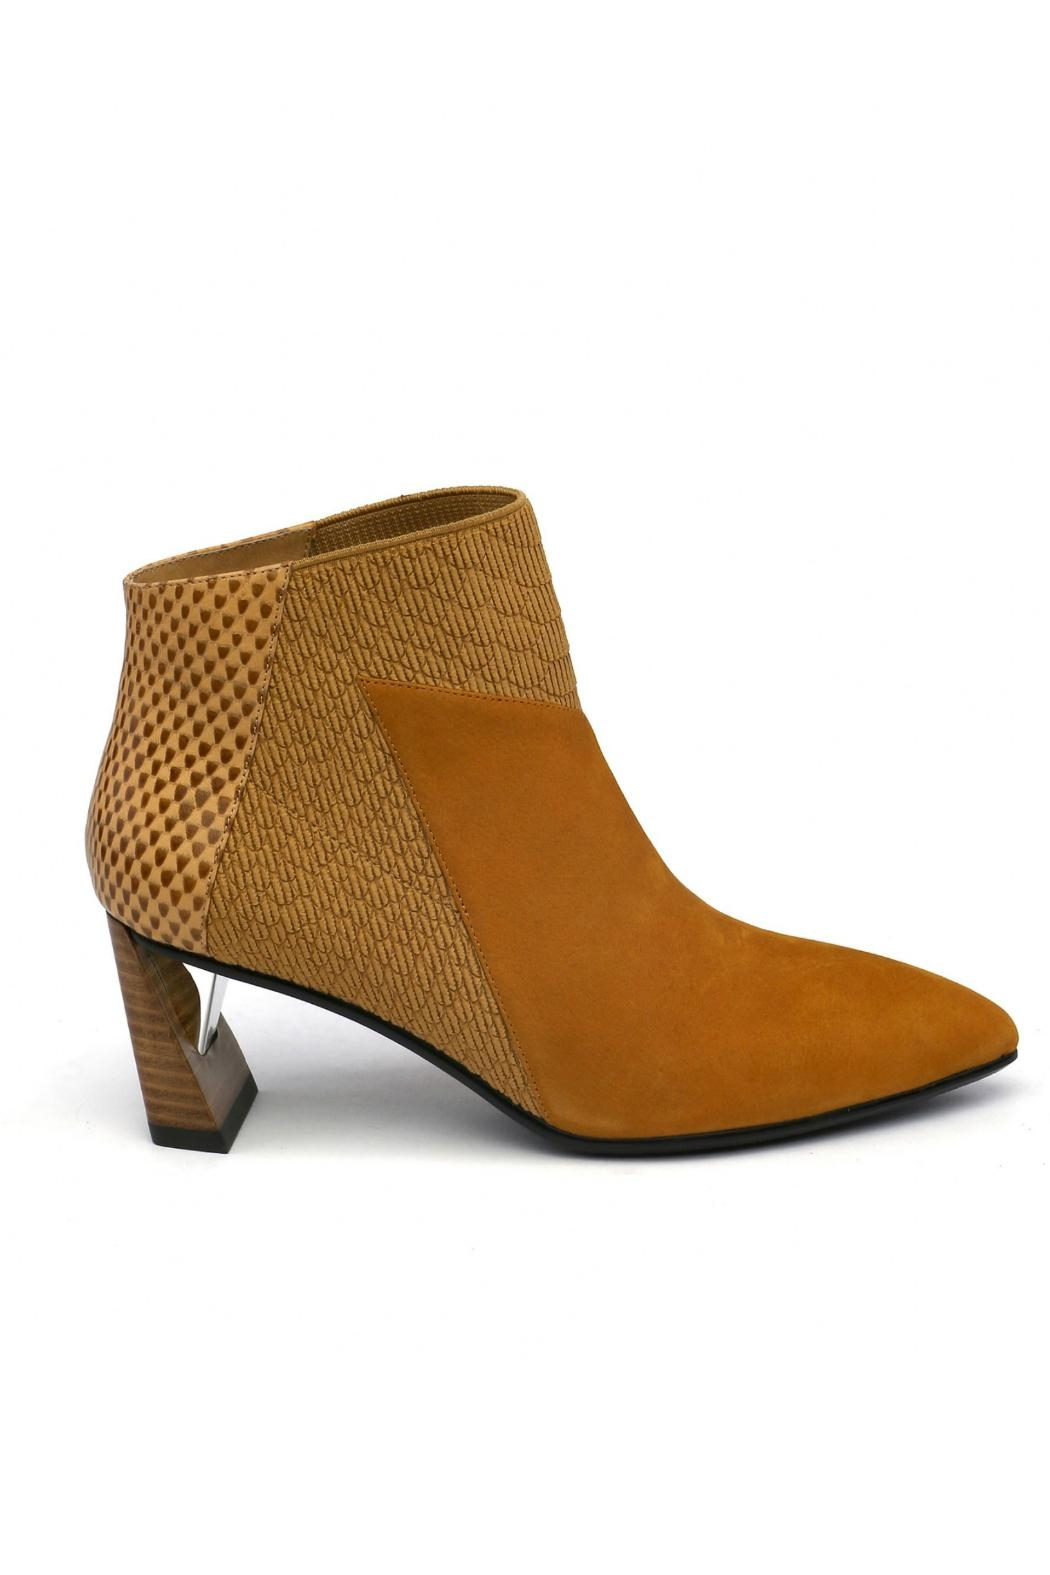 United Nude Mid-Heel Ankle Boot - Front Full Image